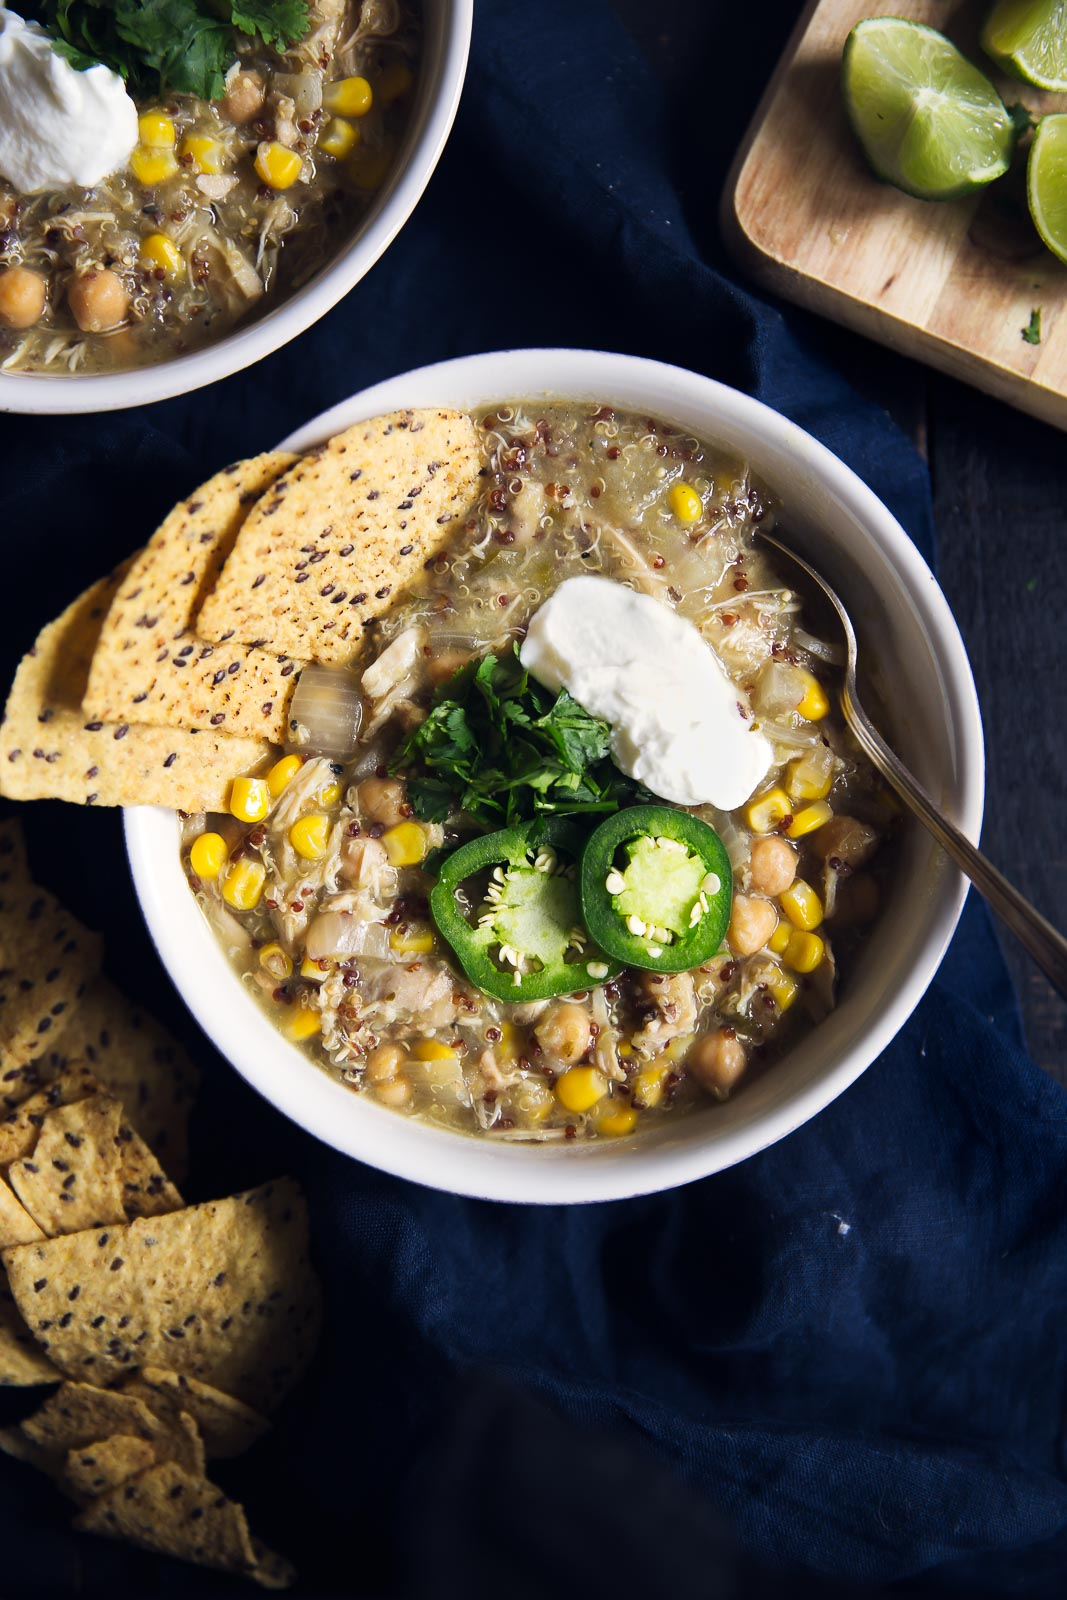 white chicken chili in a bowl with tortilla chips, jalapeño slices and sour cream